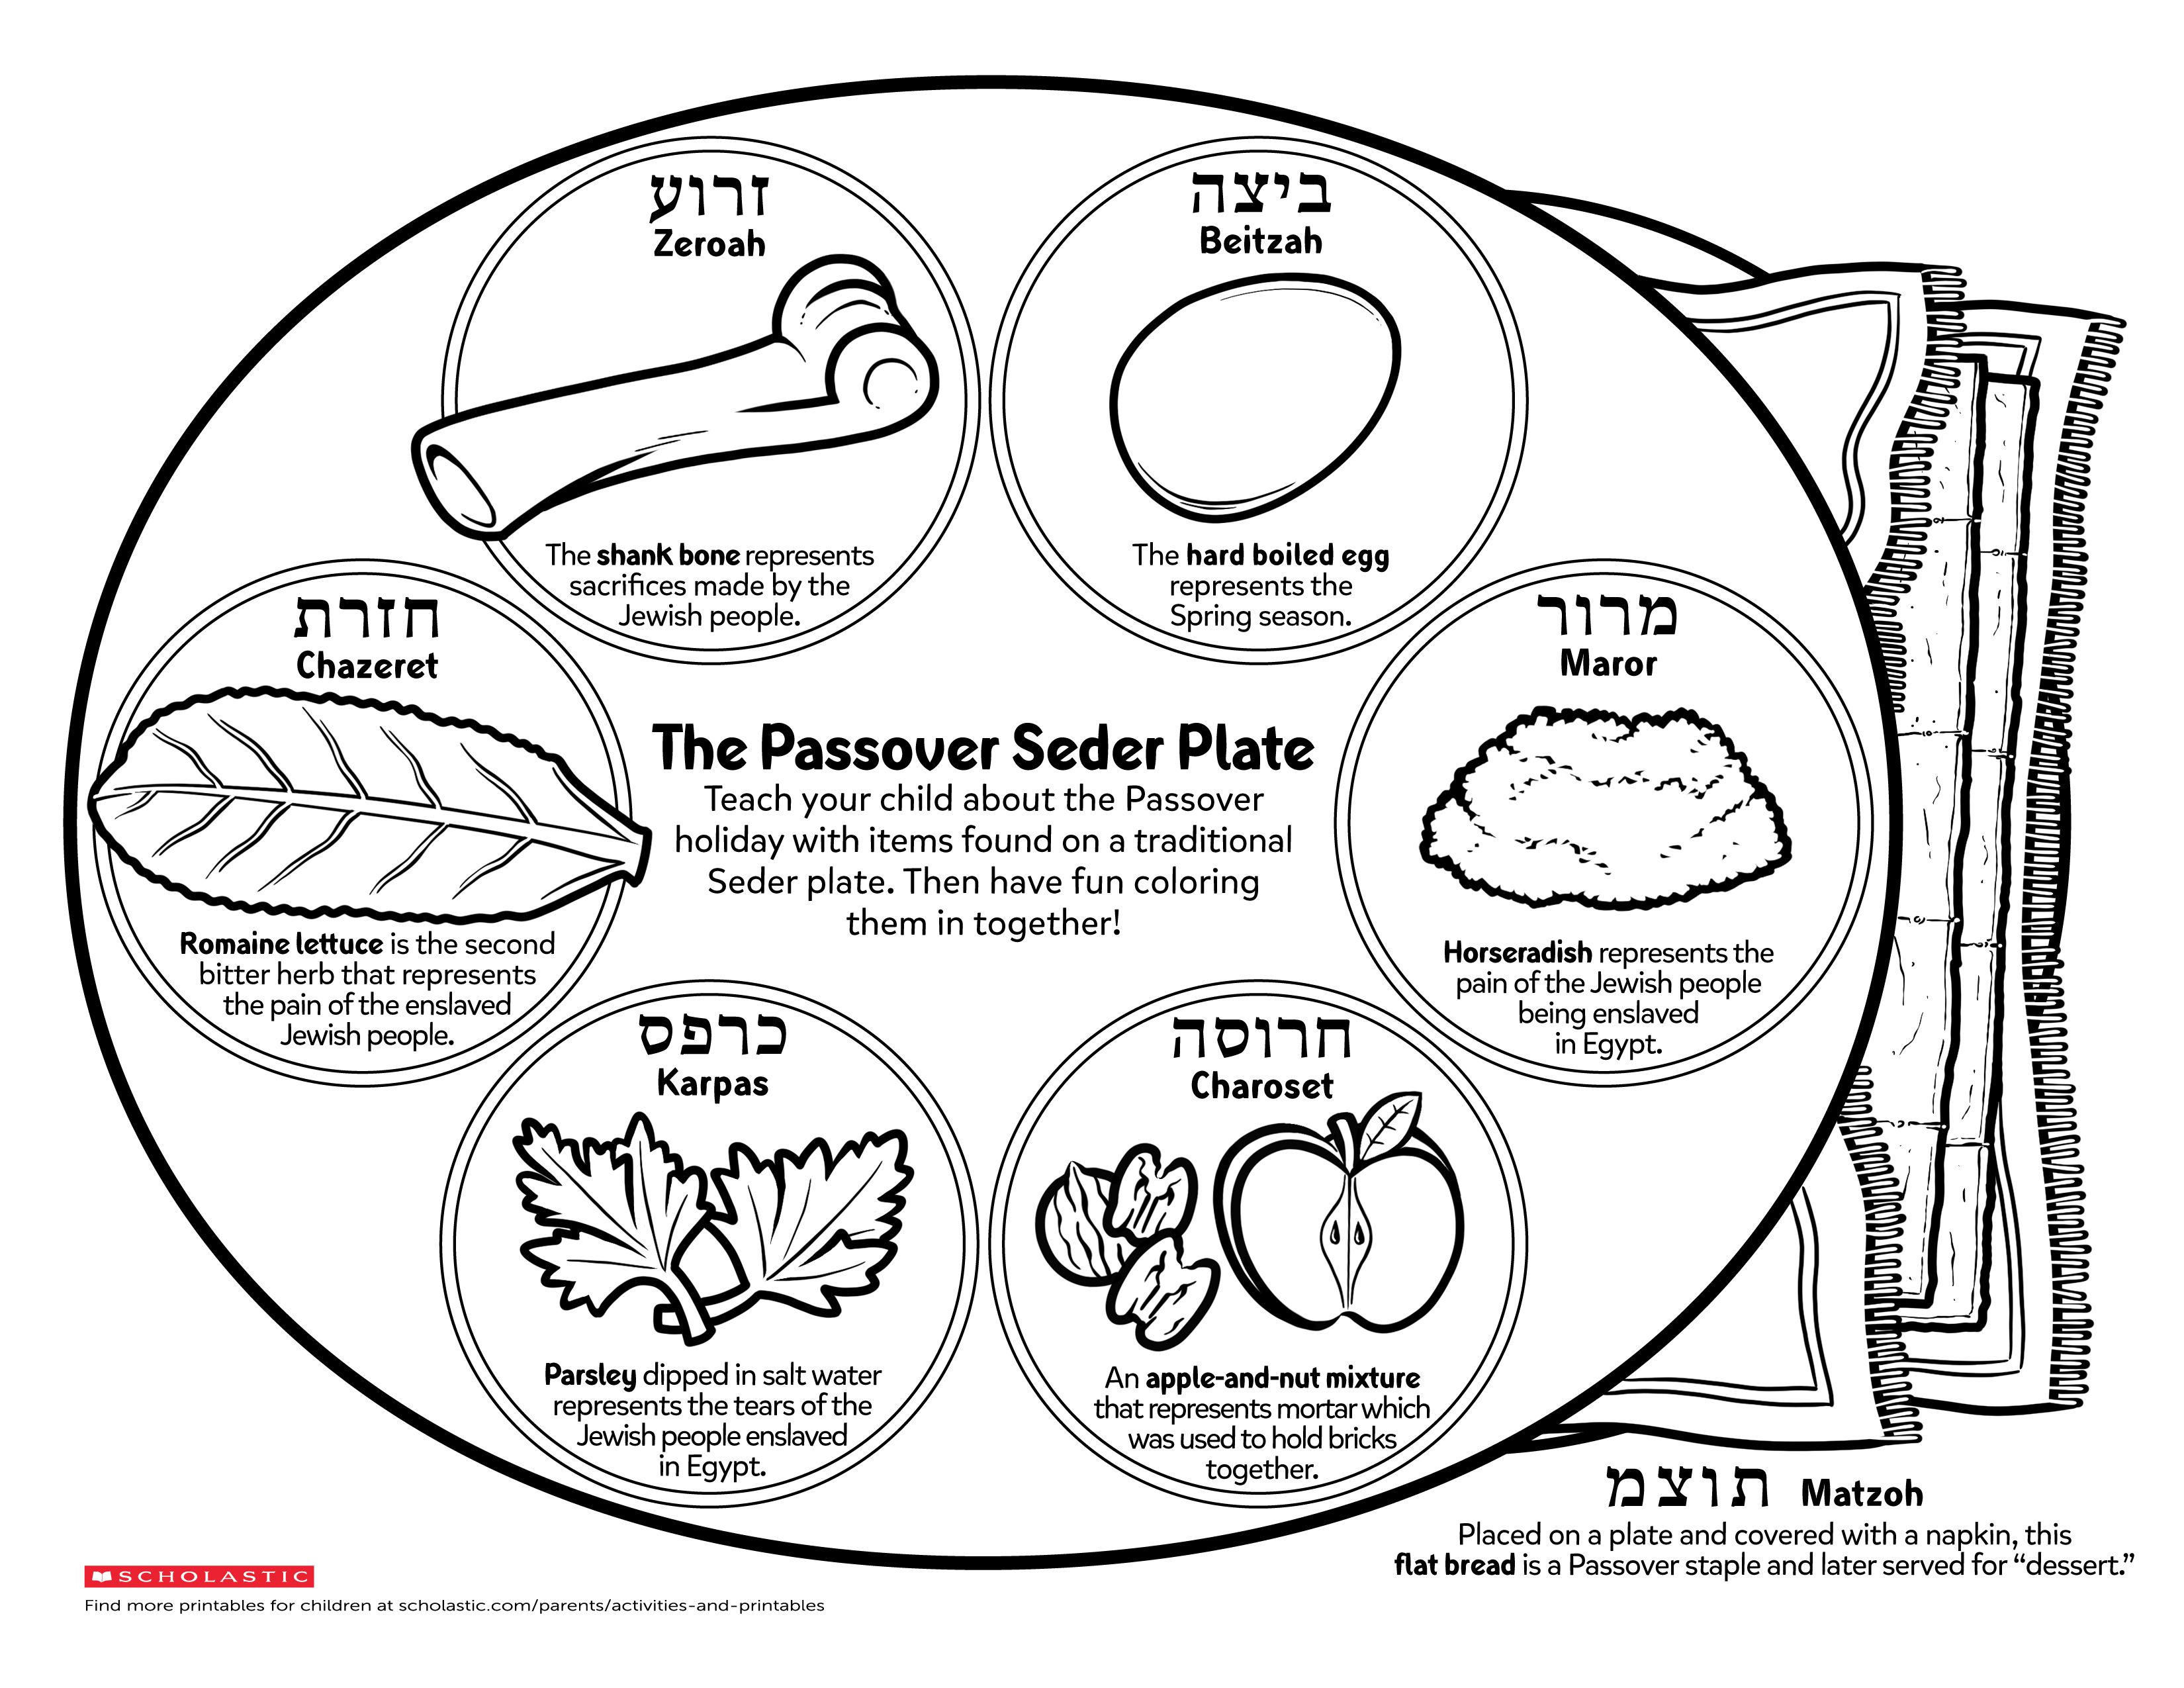 Teach Your Little One About The Jewish Holiday Passover By Coloring In This Traditional Seder Plate Together Passover Seder Plate Seder Plate Seder [ 2550 x 3300 Pixel ]